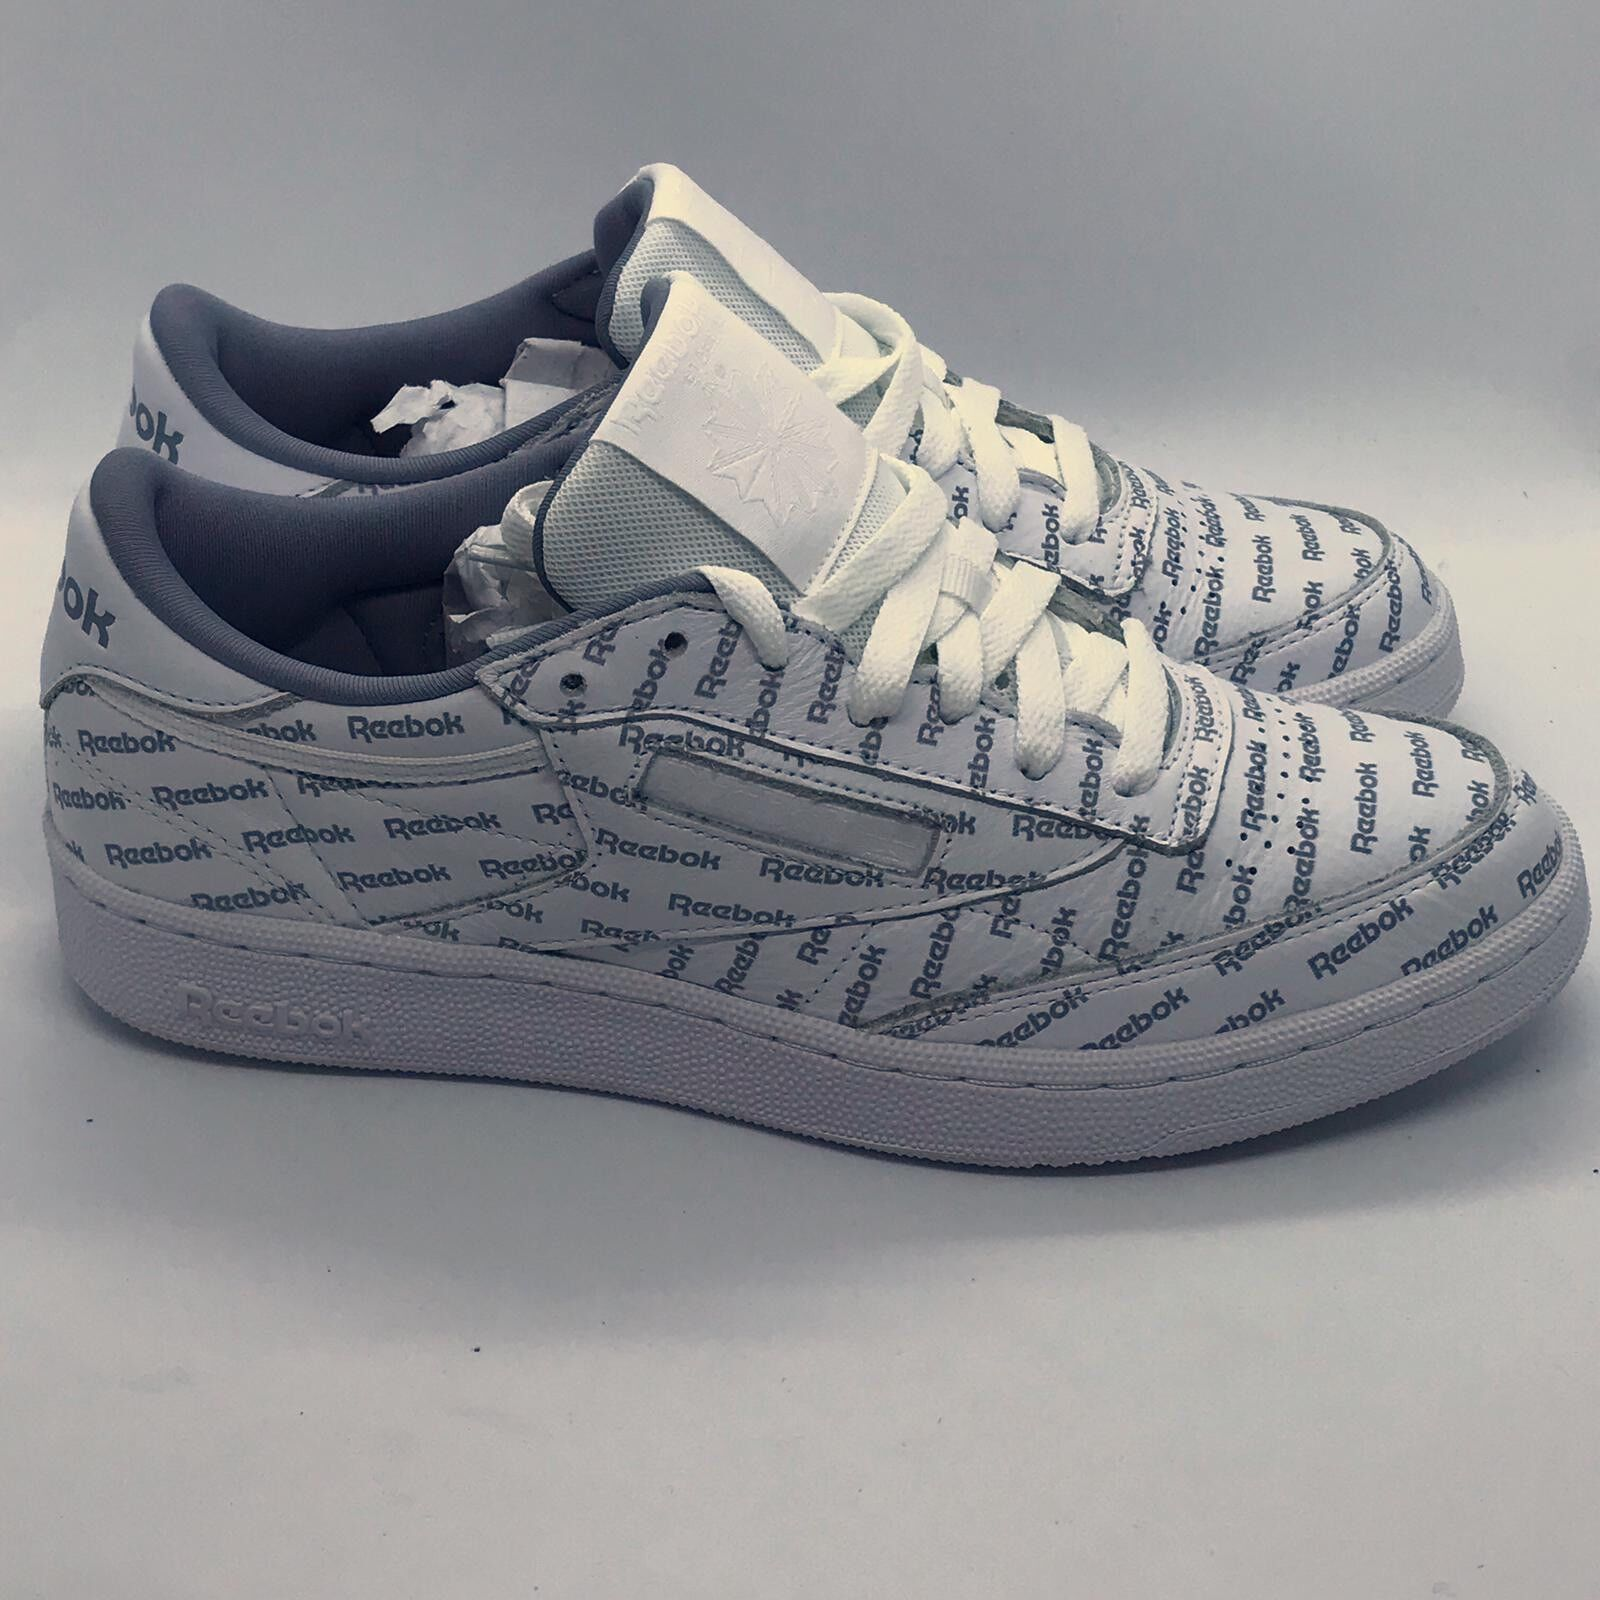 Reebok Club C 85 SO Mens White Leather Lace Up Sneakers shoes Brand New Size 7.5